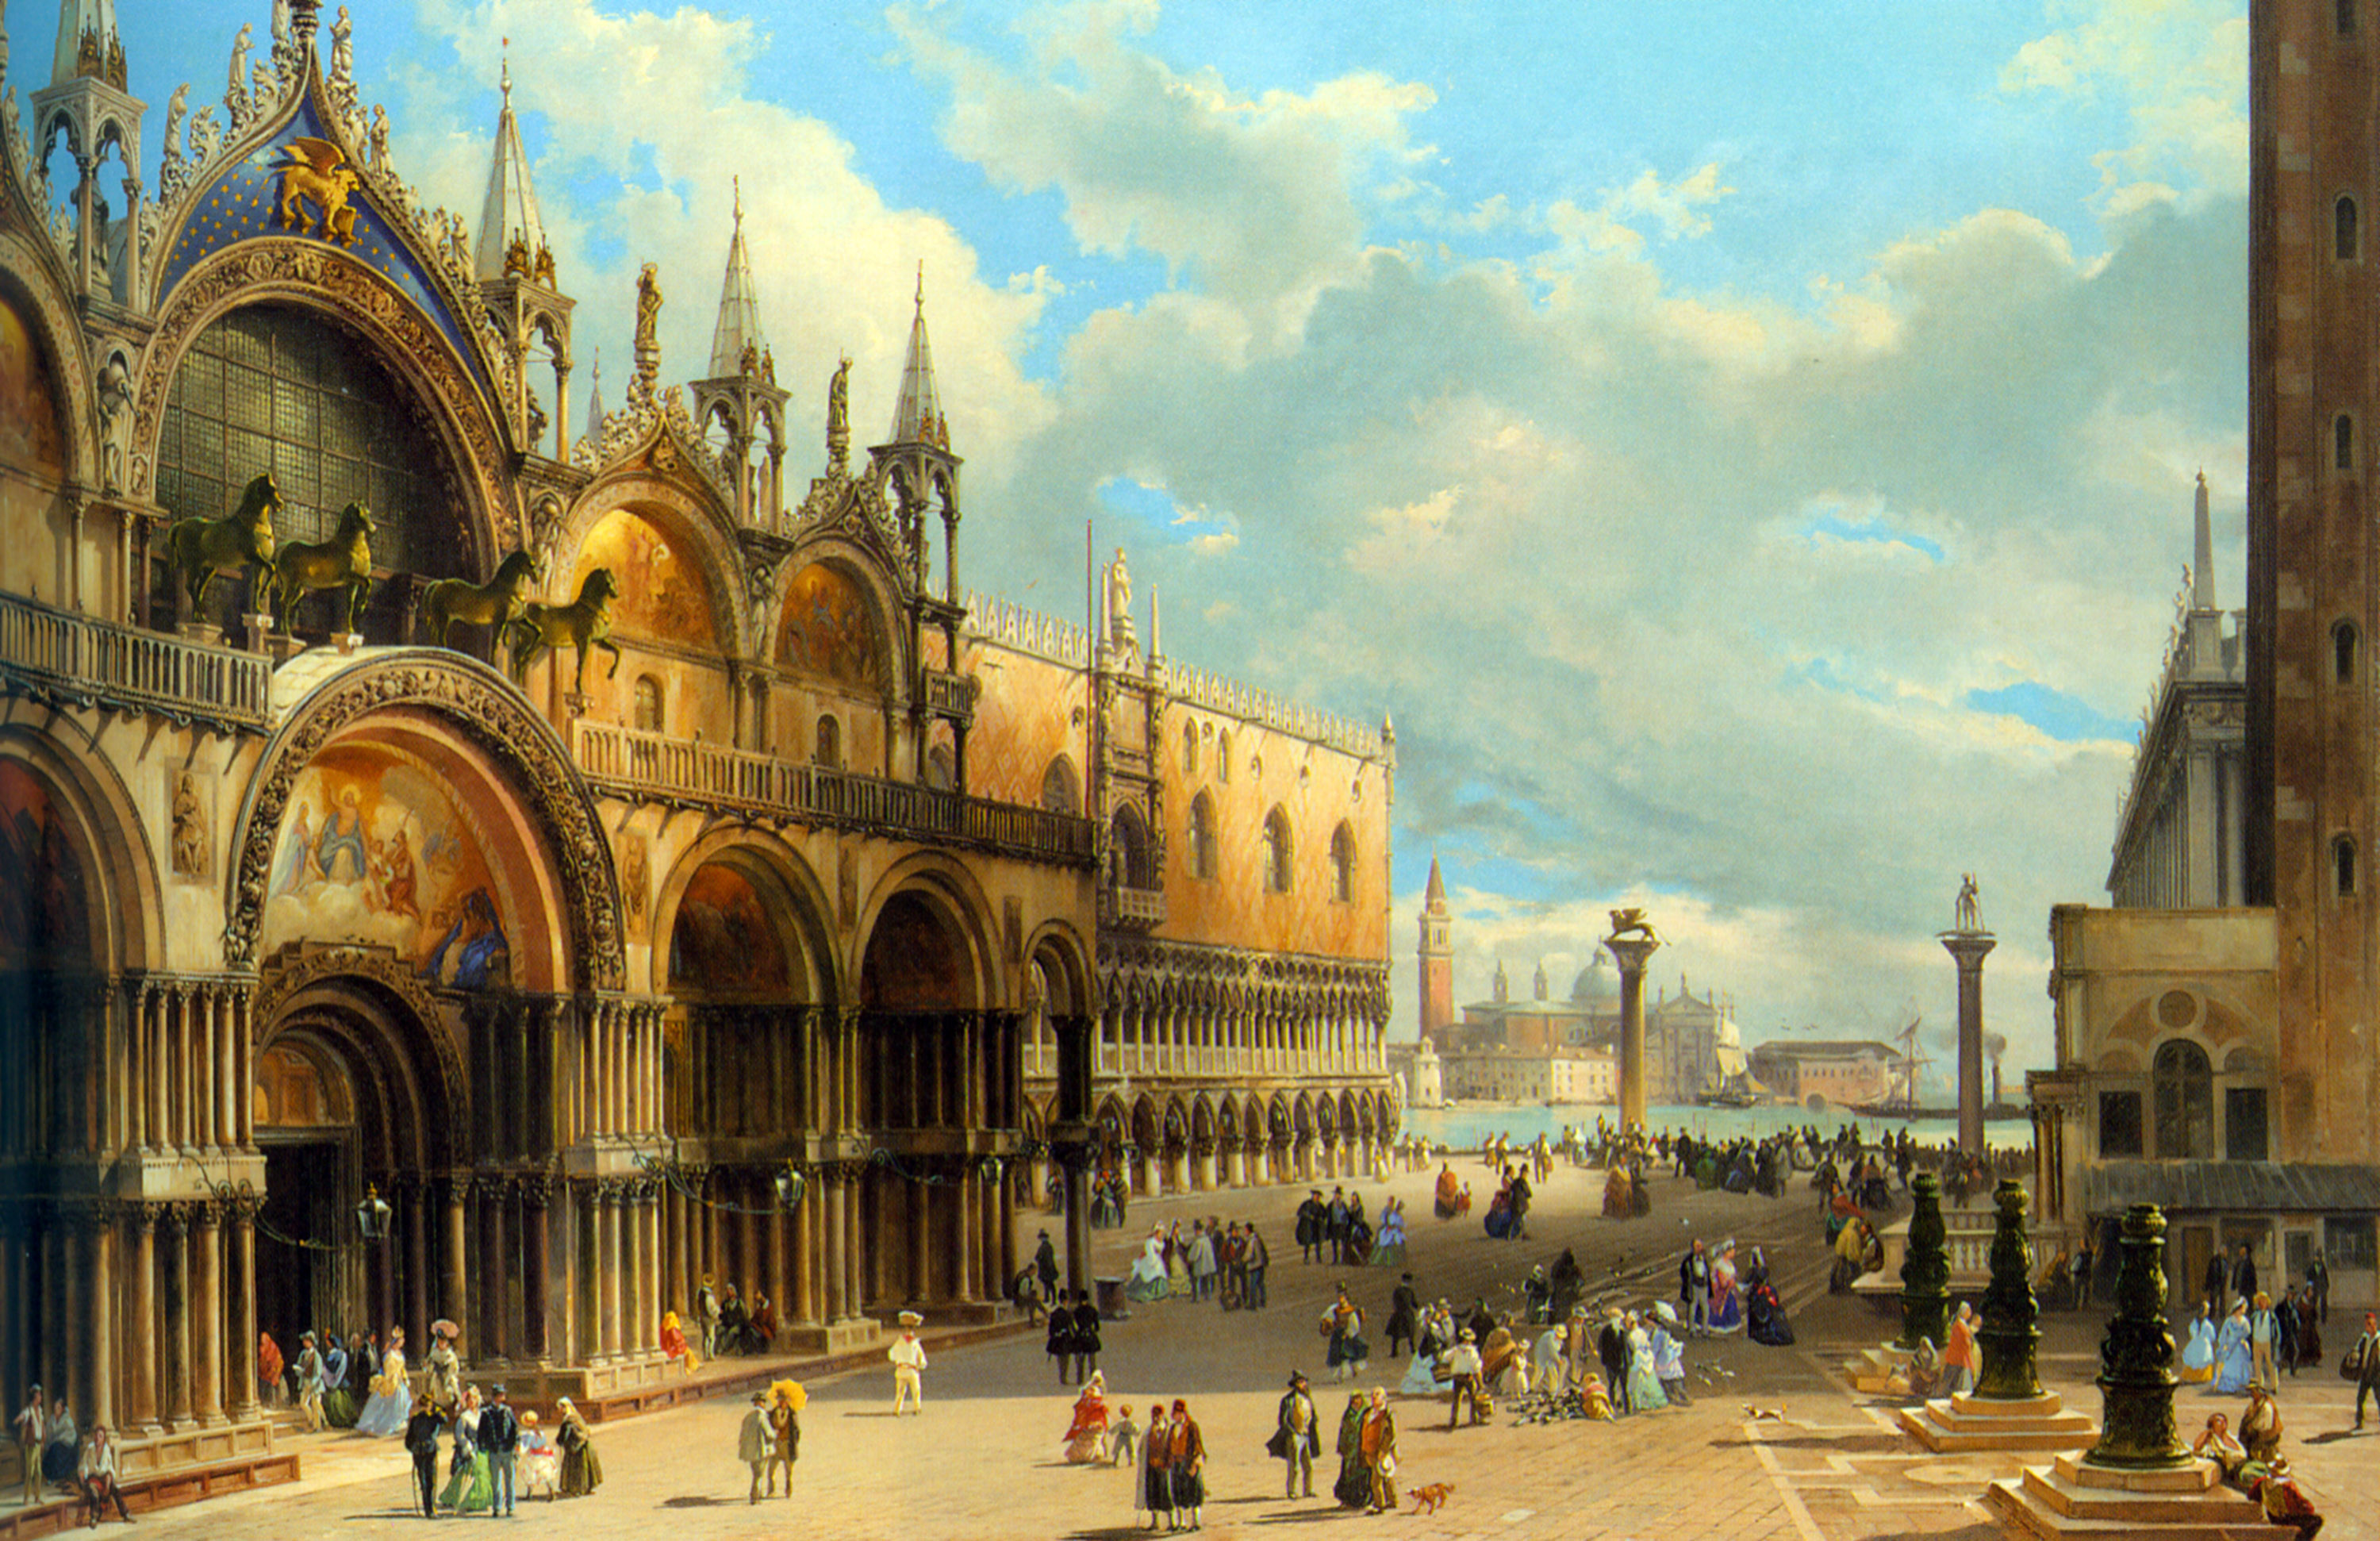 St. Marks and the Doges Palace, Venice :: Carlo Grubacs - Architecture ôîòî